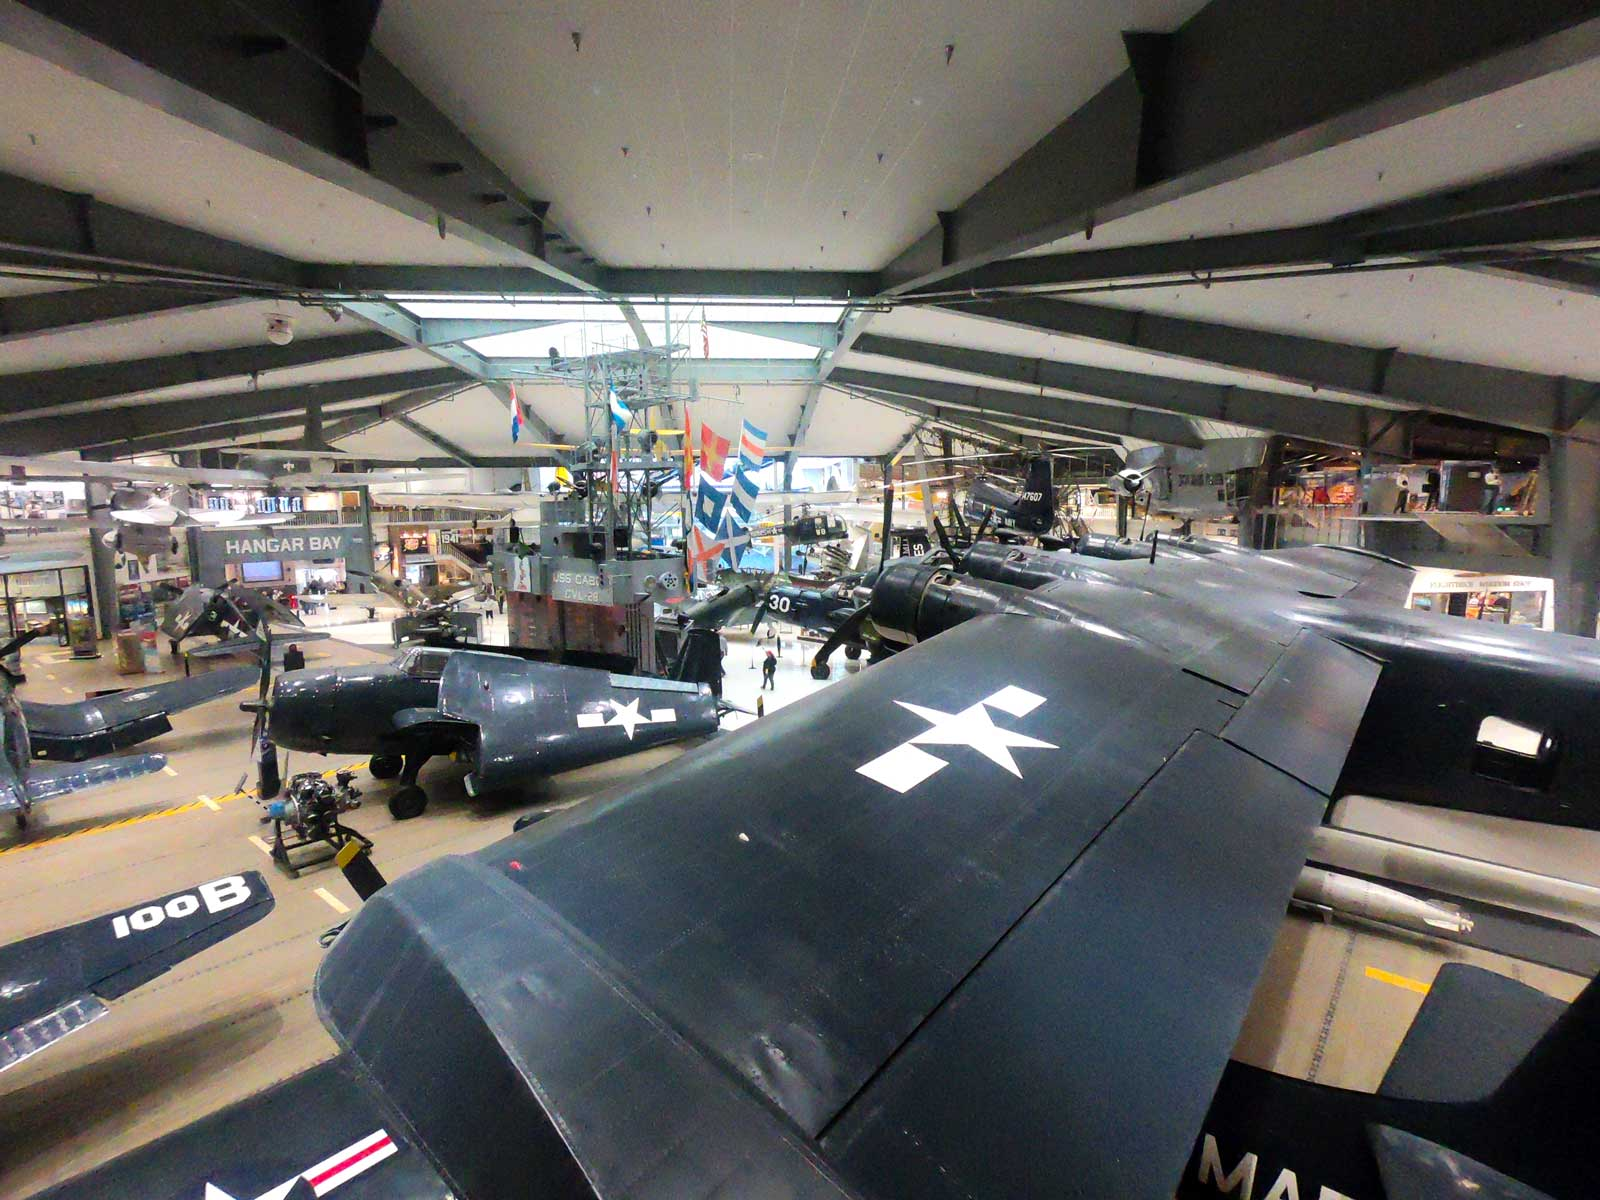 Hangar full of Navy aircraft on display at National Naval Aviation Museum, Pensacola, Florida